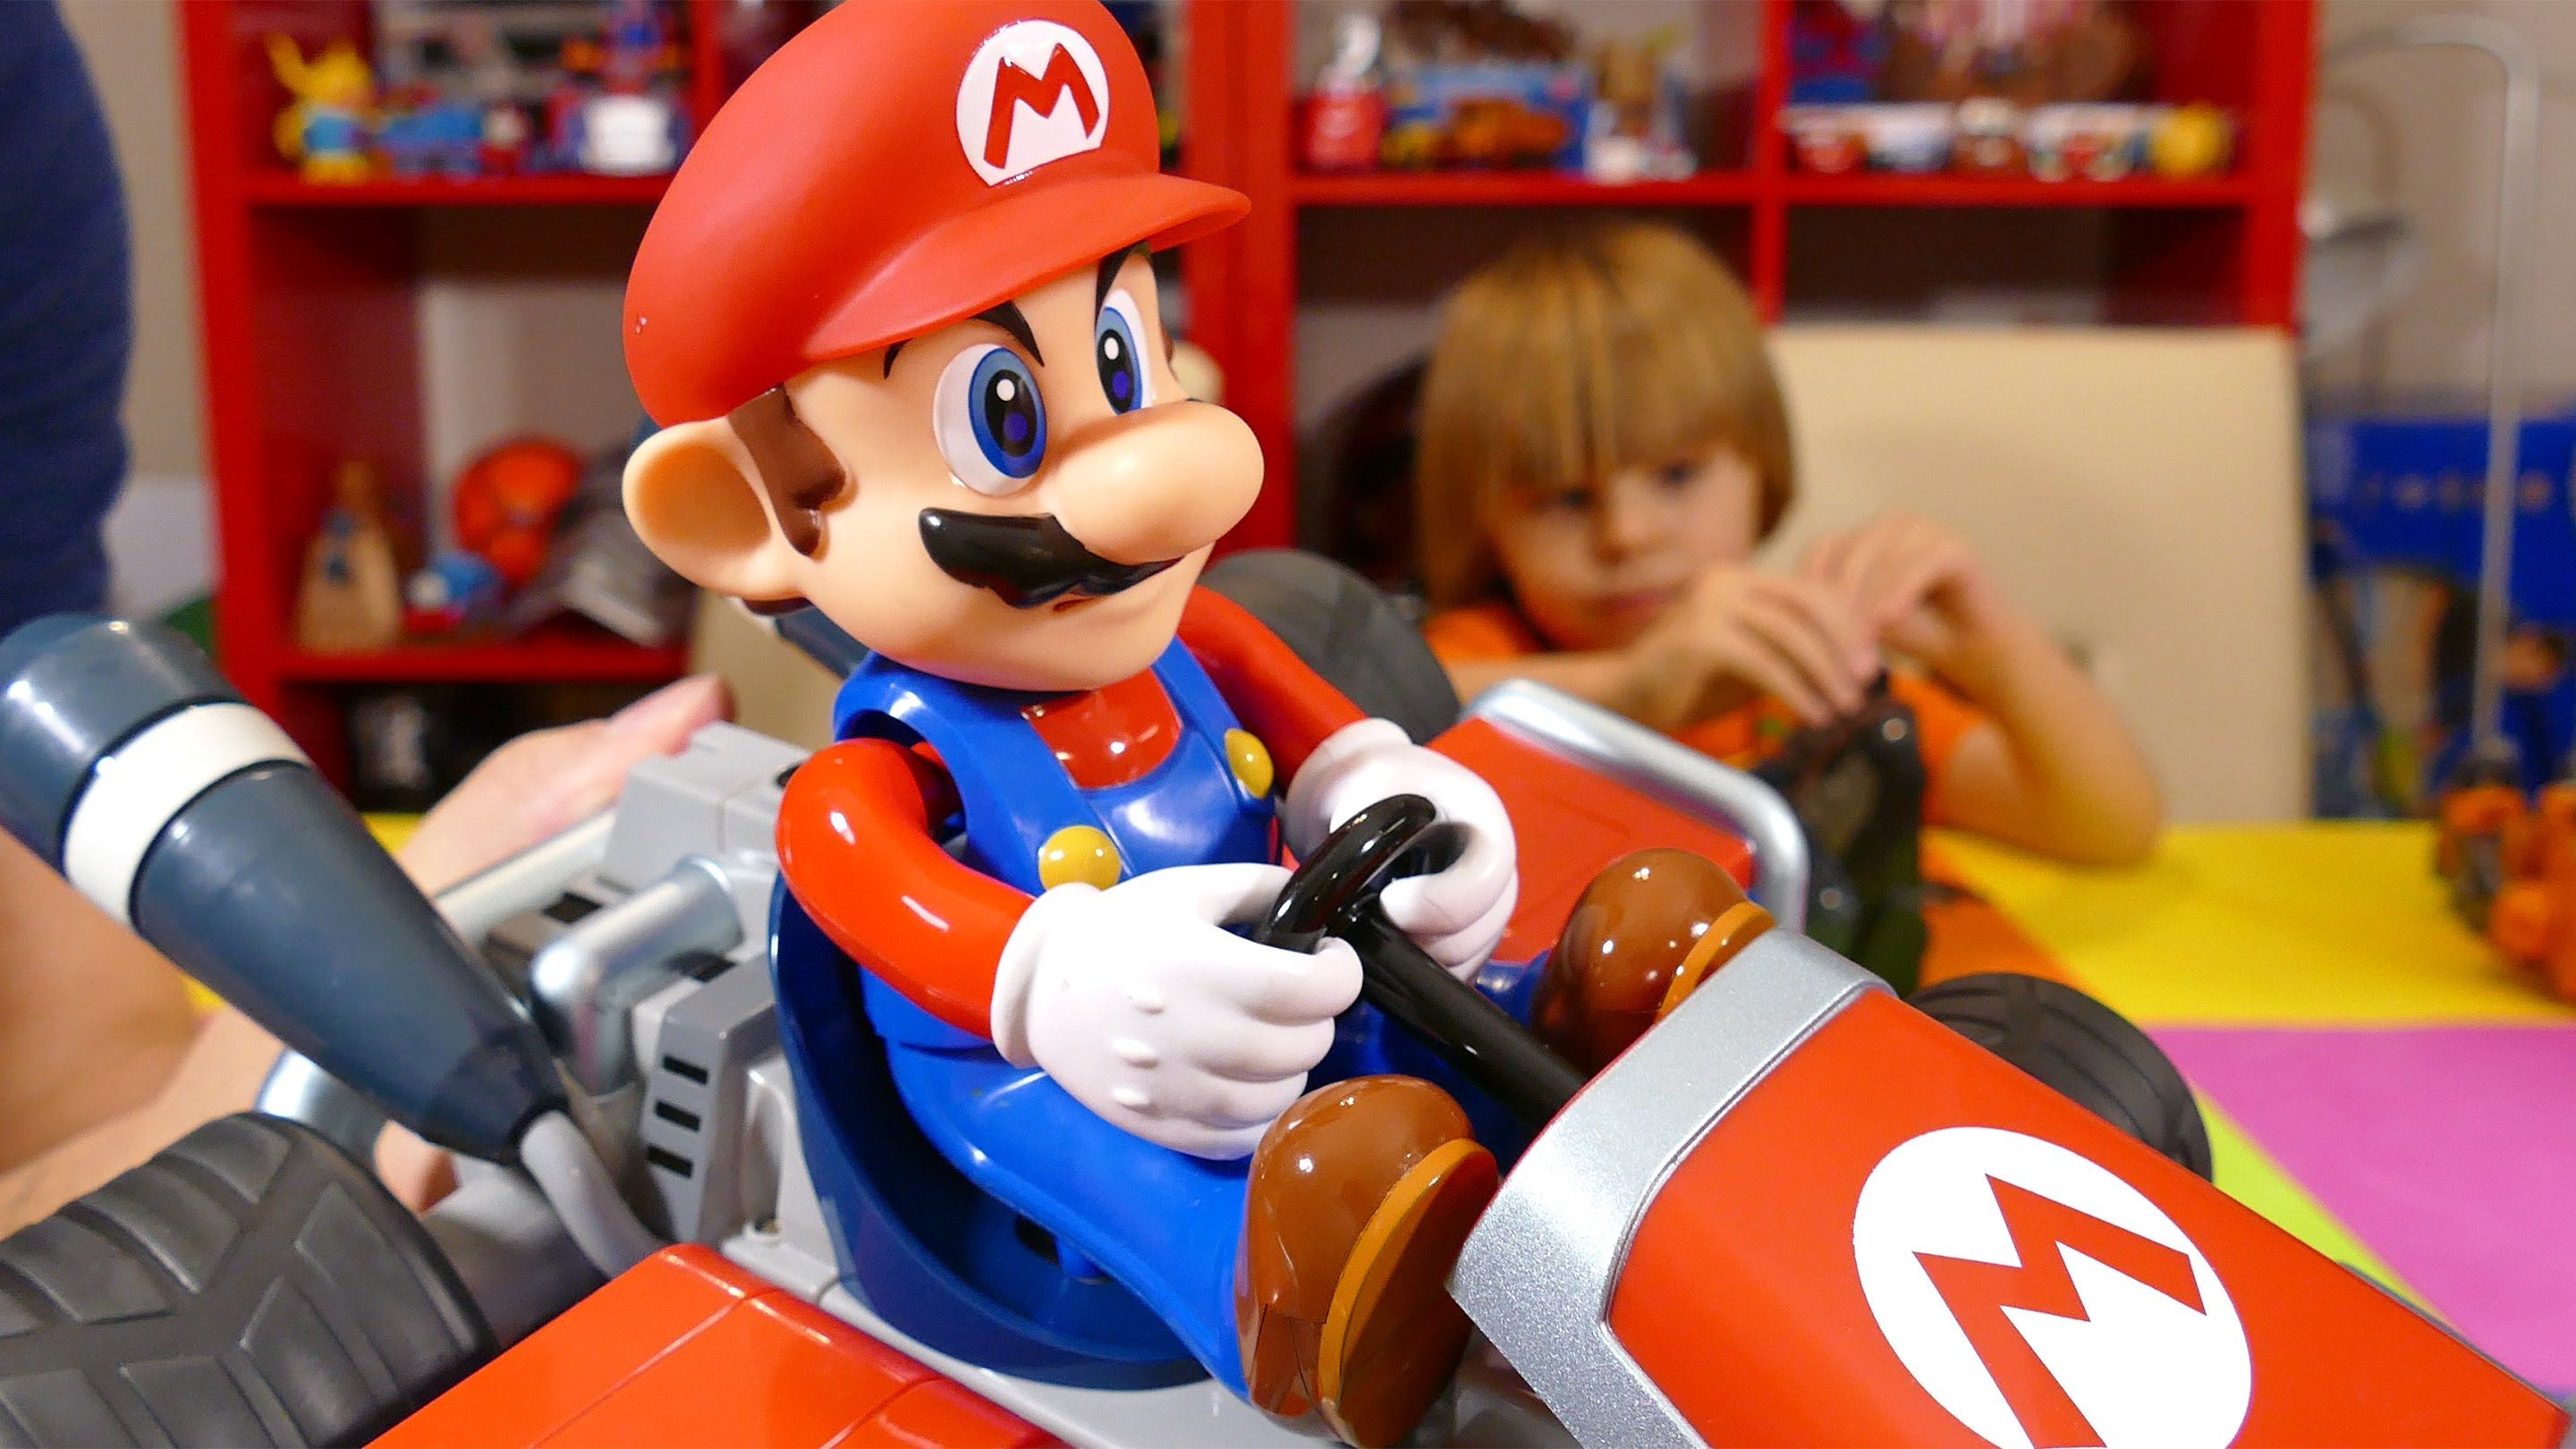 Mario Kart Remote Control Car By Carrera Rc Kid Toys Are Fun Toy Cars Kid Toys Cool Toys Toy Car